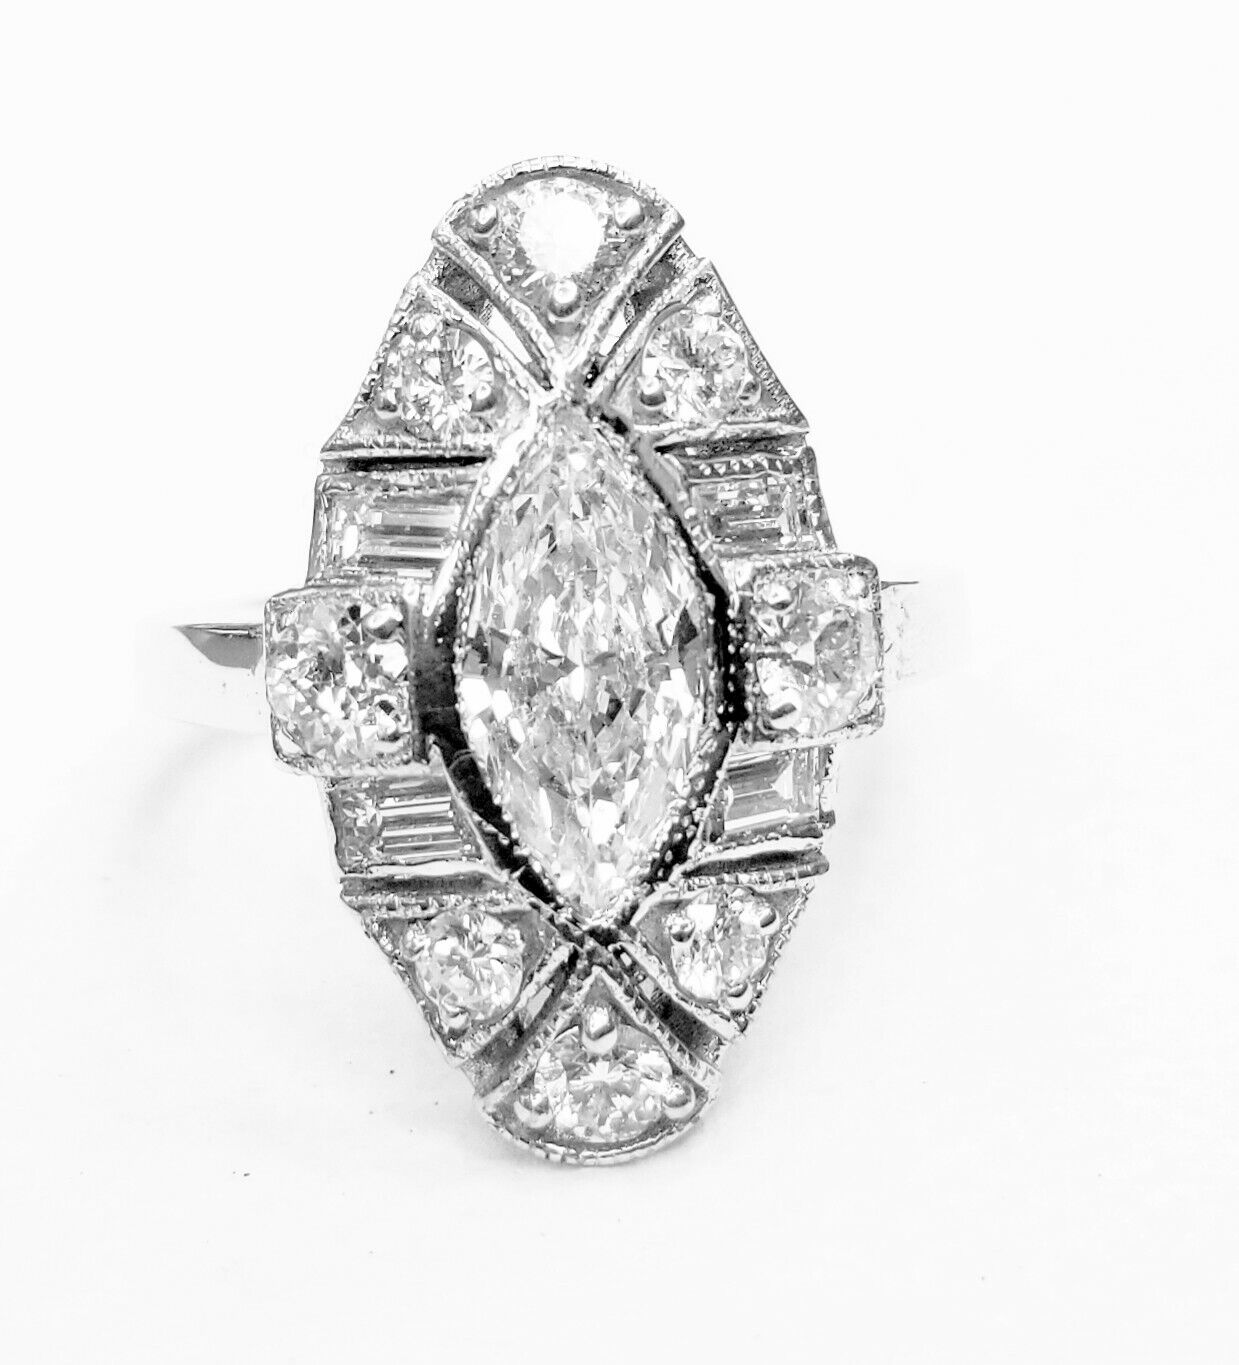 248a5b5c1484a 2.72ct gold white 14k VS-H Diamond marquise natural ring deco art ...